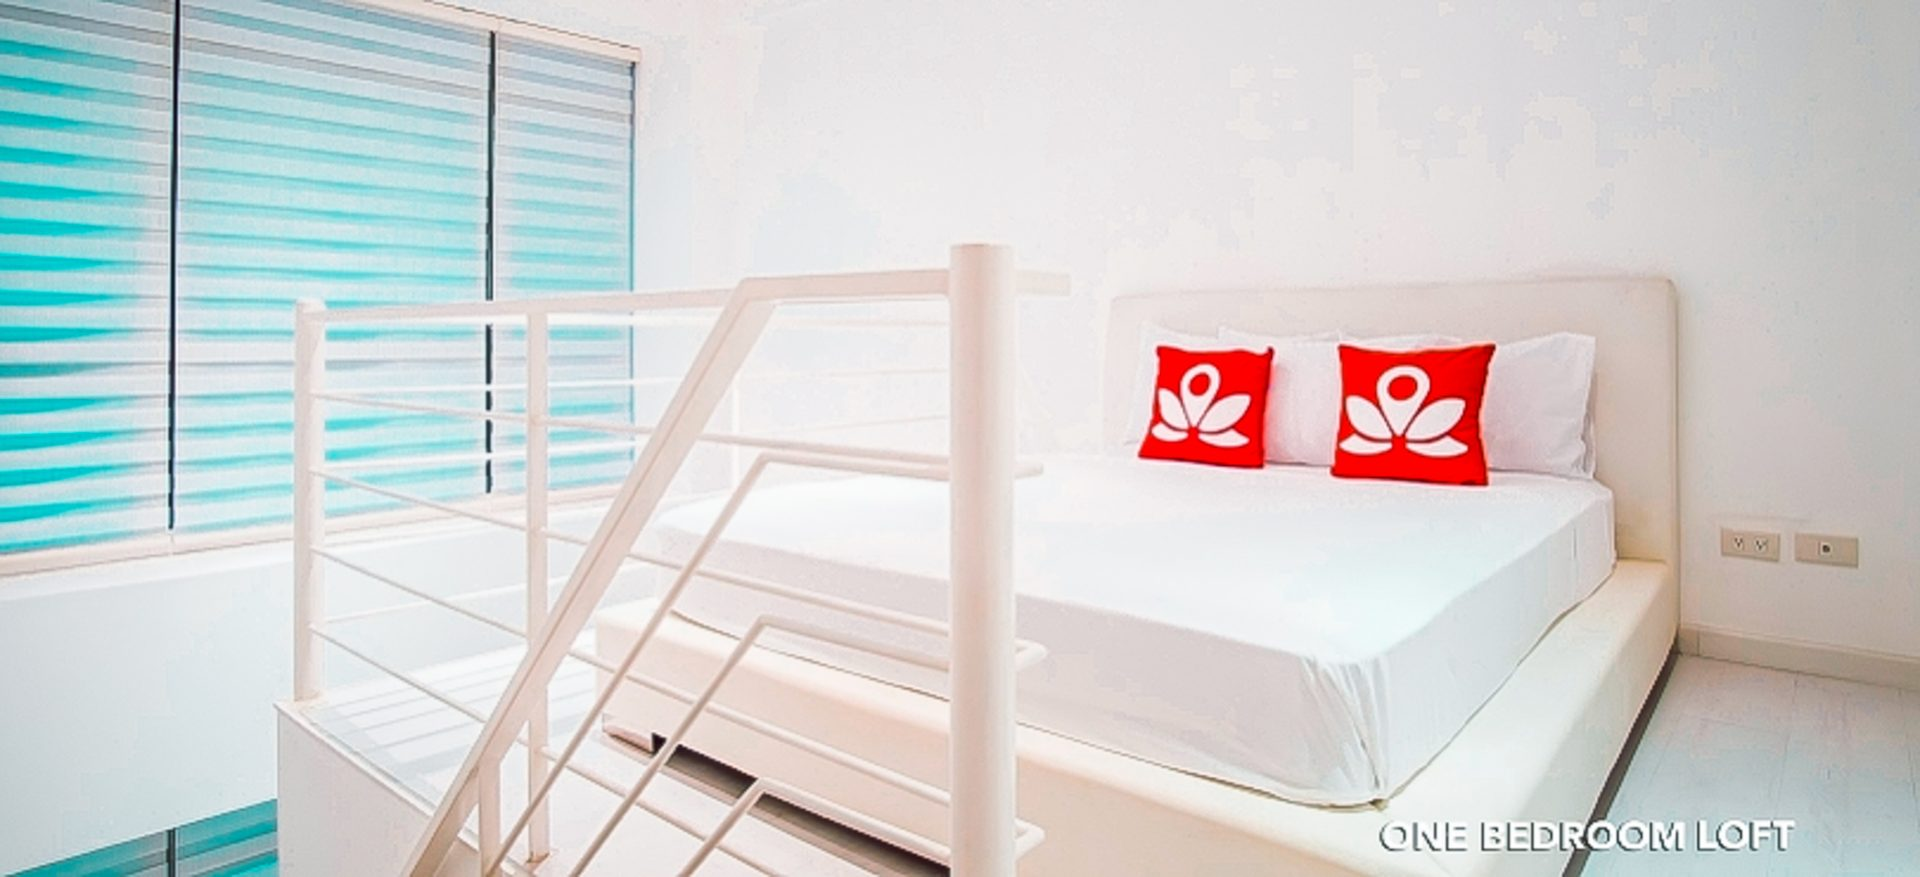 gramercy-staycation-finding-affordable-stays-with-zen-rooms